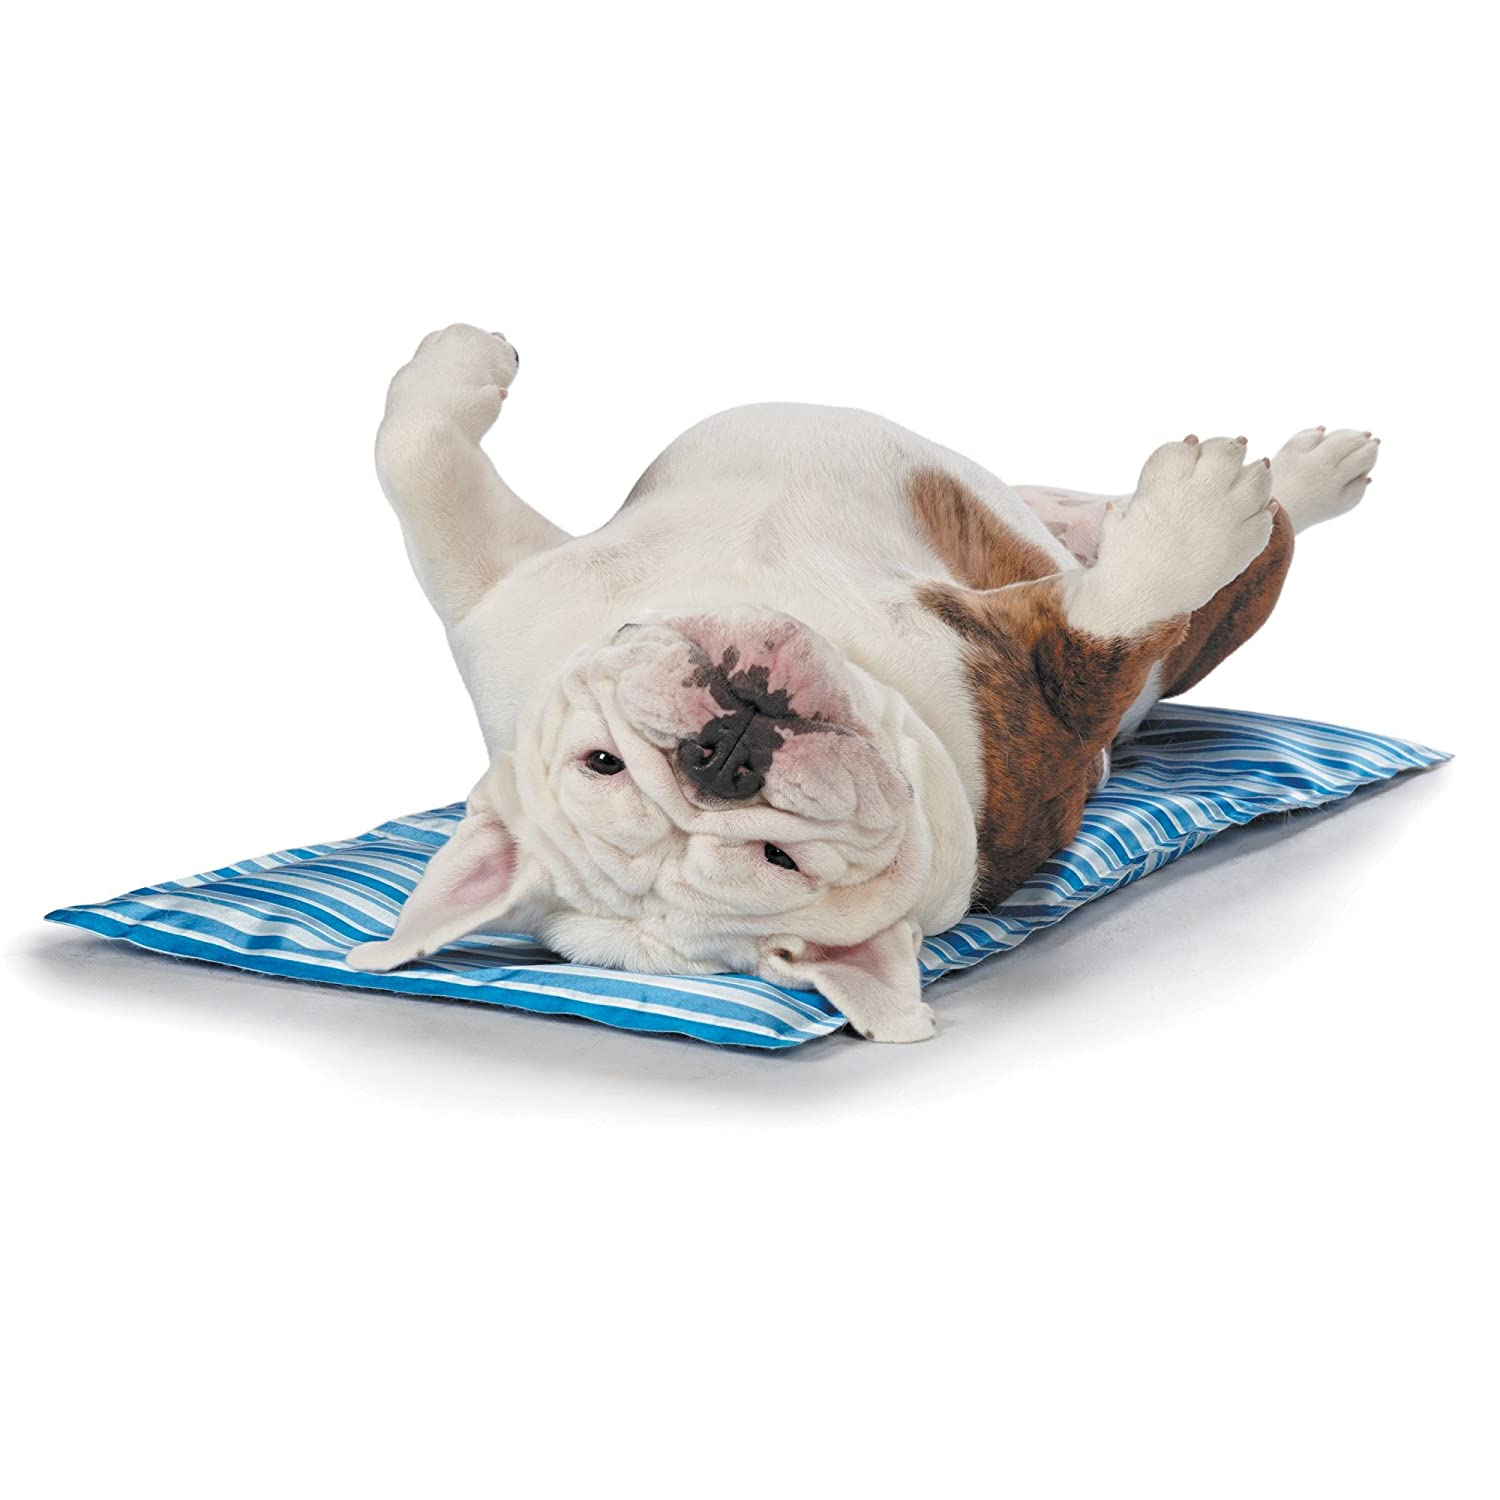 jw in place mat food company ca stay may pet supplies colors vary amazon dp